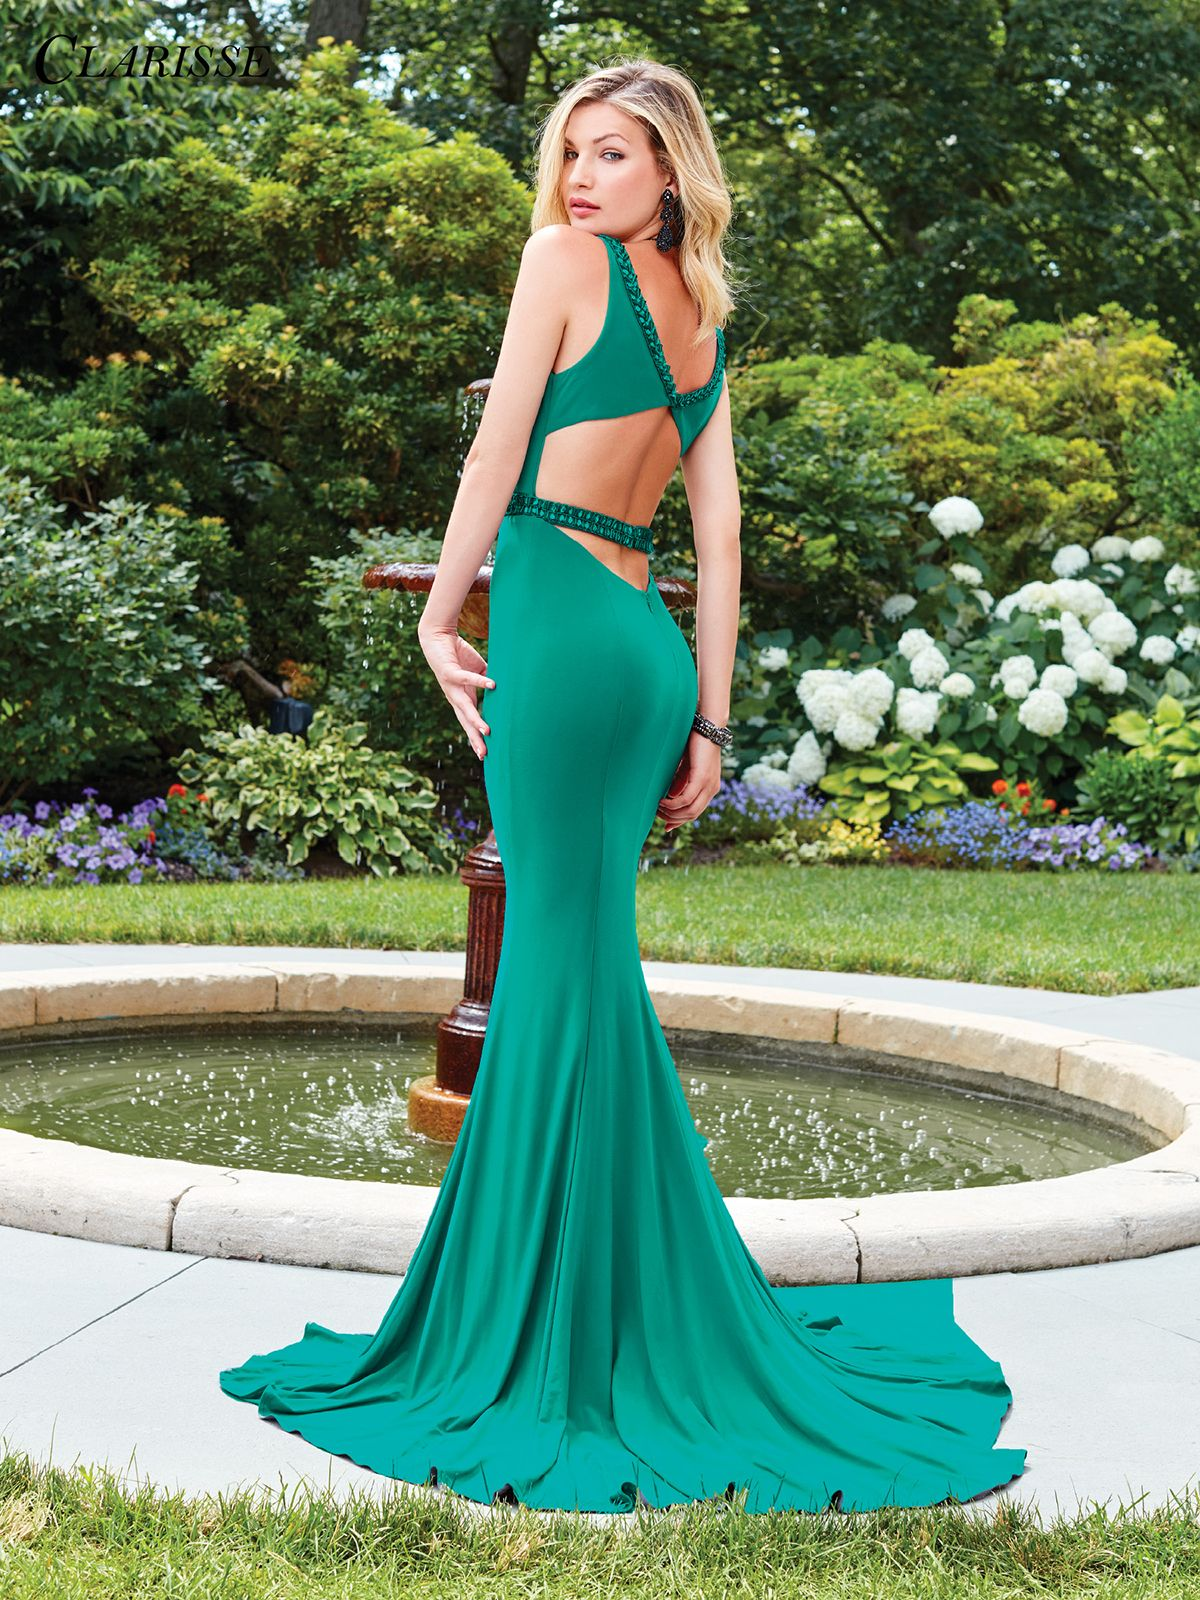 Jewel Tone Fitted Prom Dress 3492   2 Colors   Fitted prom dresses ...